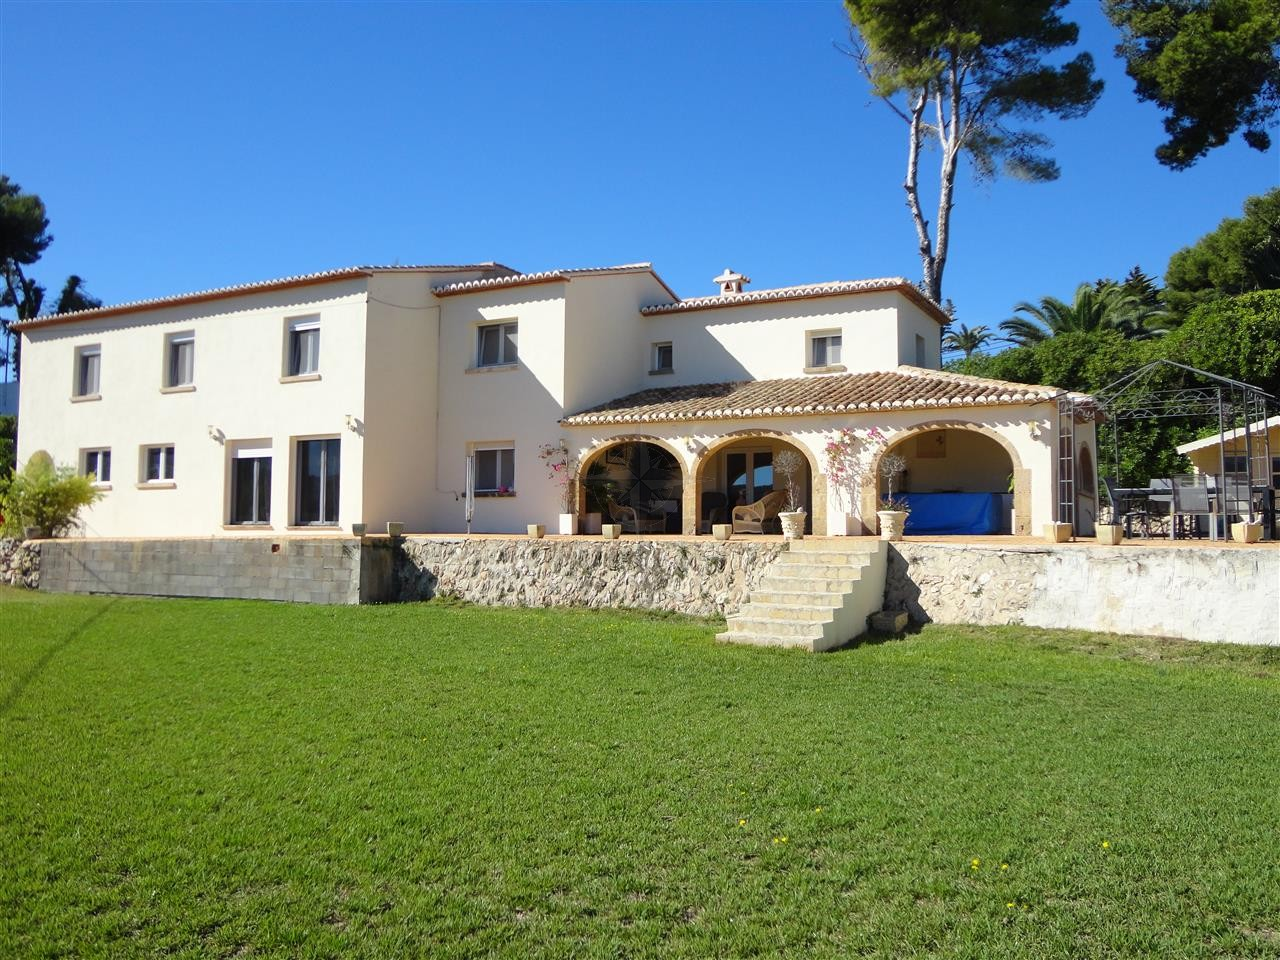 First Class Elegant Grande Villa With Large Plot, 5 Bedrooms 4 Bathrooms In Tossalet Javea, Alicante